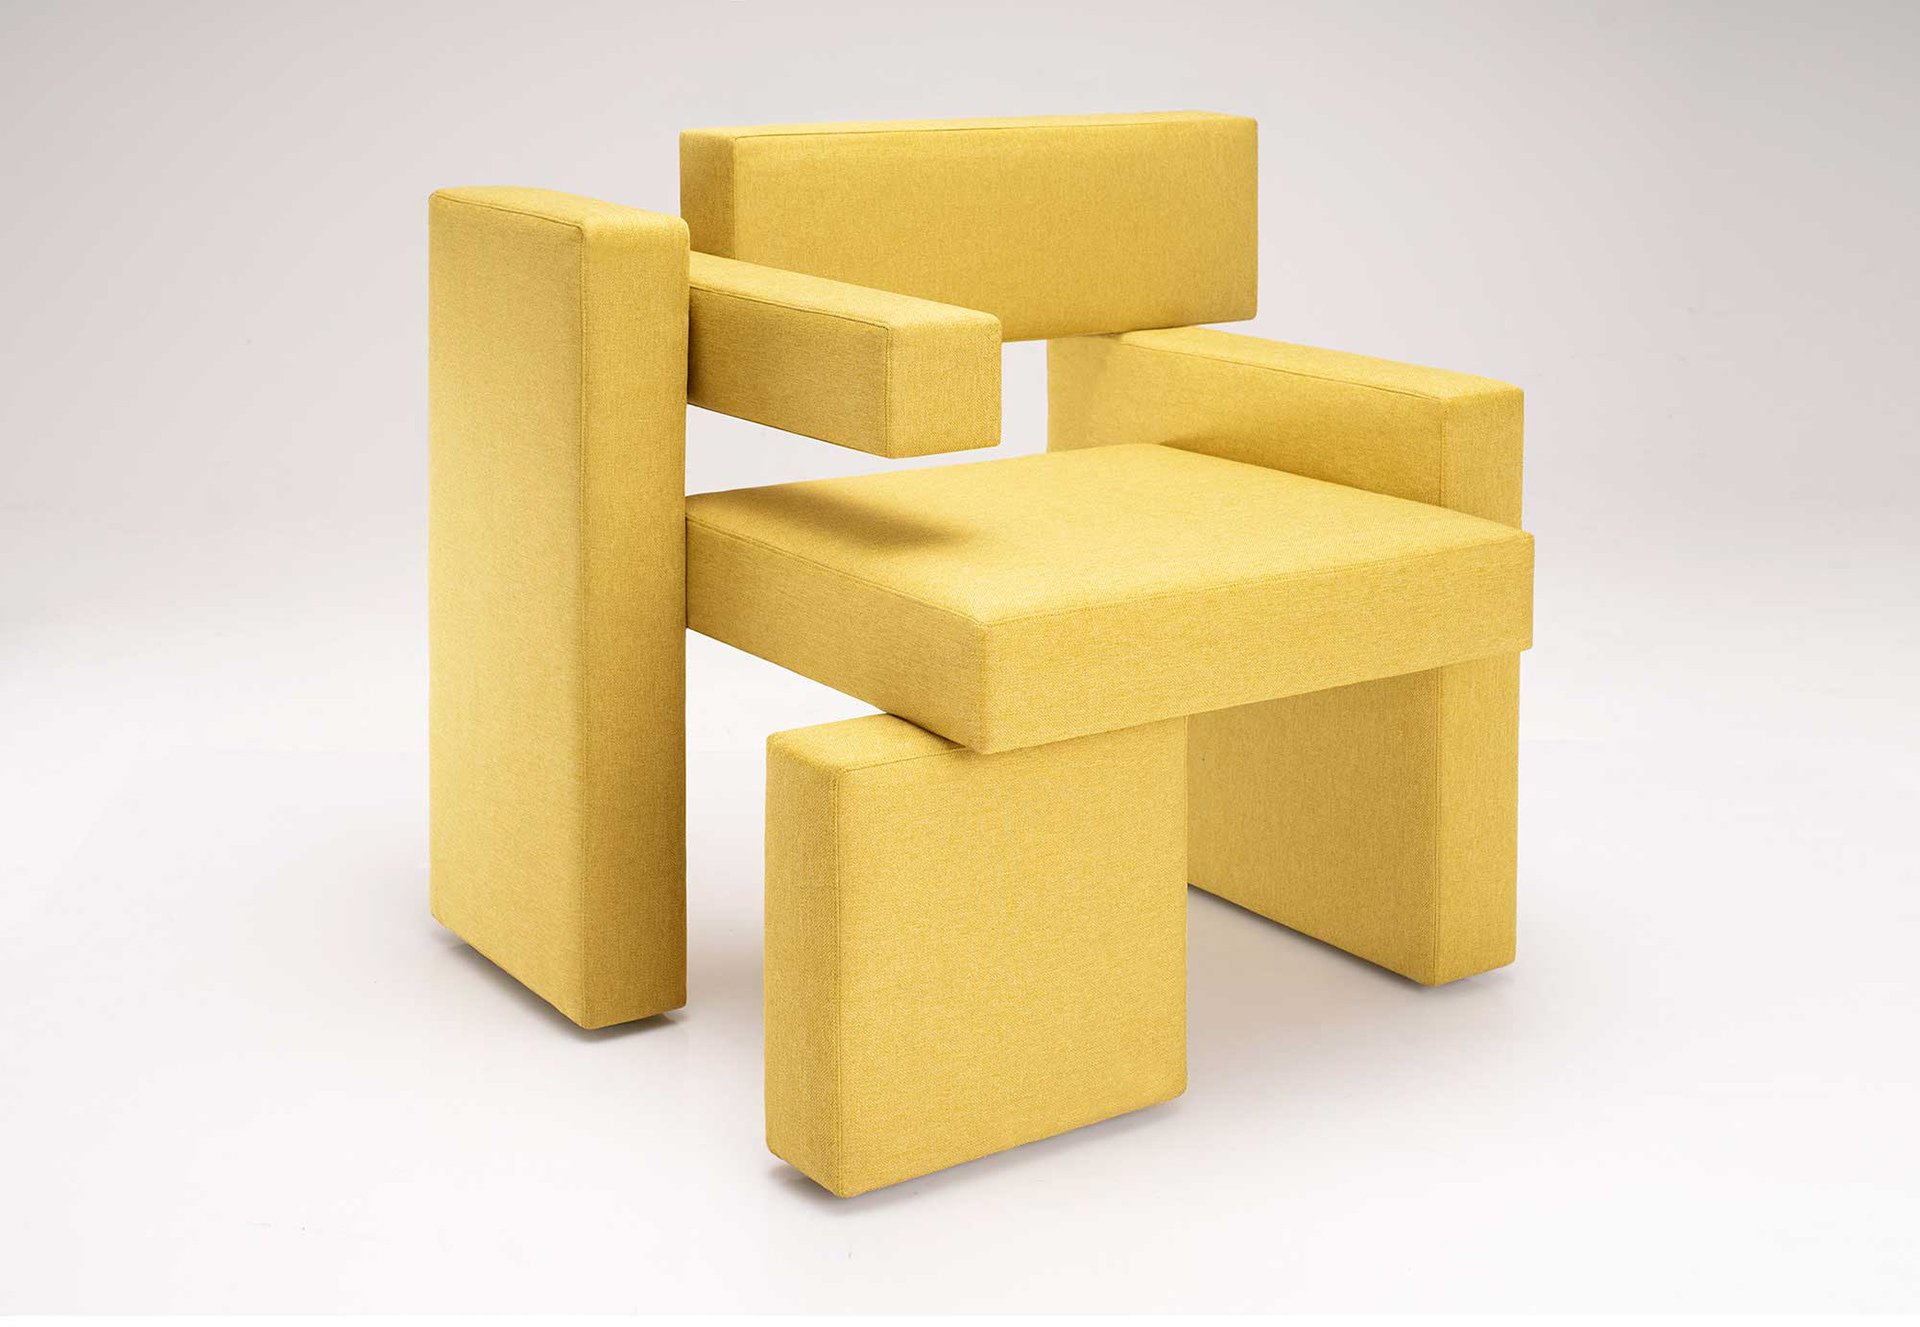 Yellow Brick chair by Dmitriy Sivak